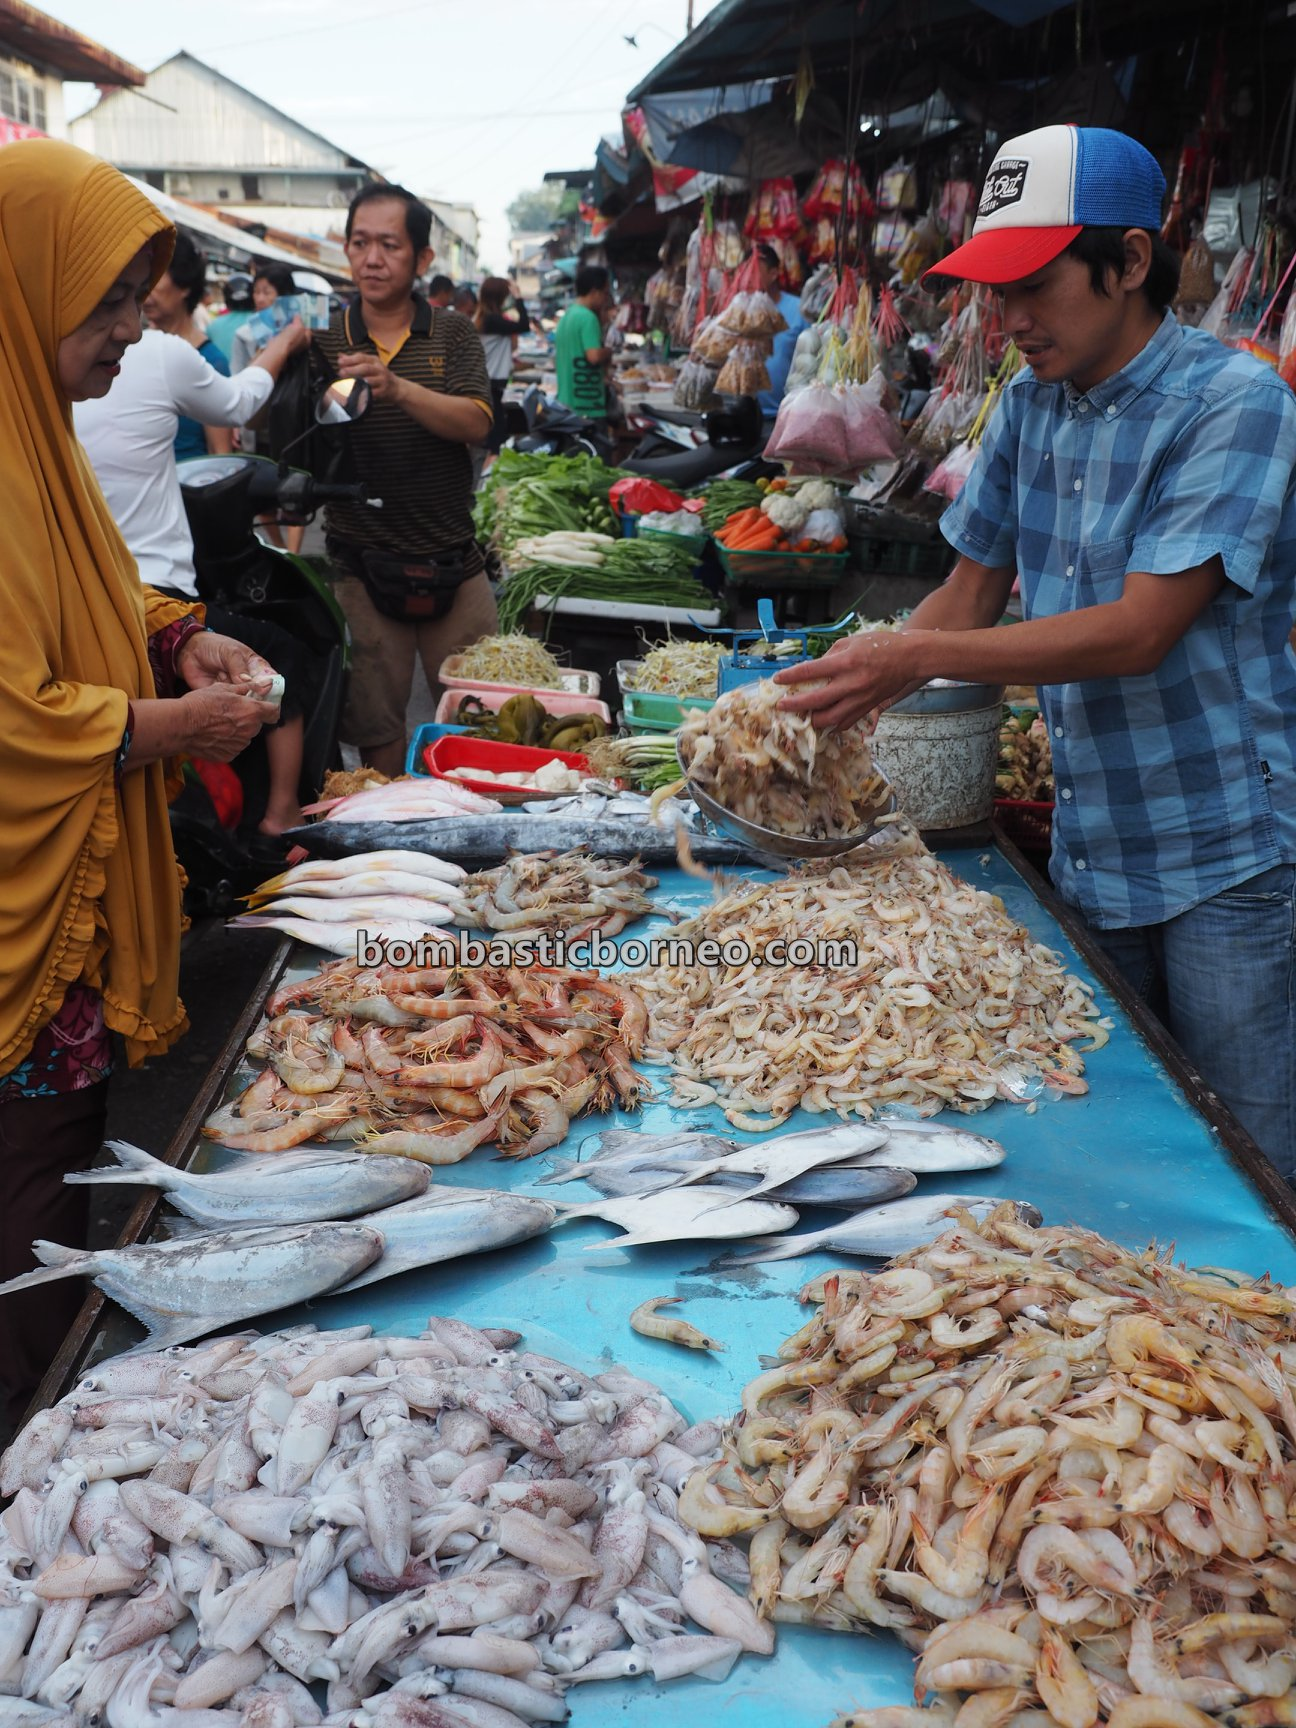 Morning Market, traditional, destination, Indonesia, seafood, salted fish, ikan, Tourism, tourist attraction, travel guide, Cross Border, Borneo, 跨境婆罗洲游踪, 印尼西加里曼丹, 山口洋海鲜早市